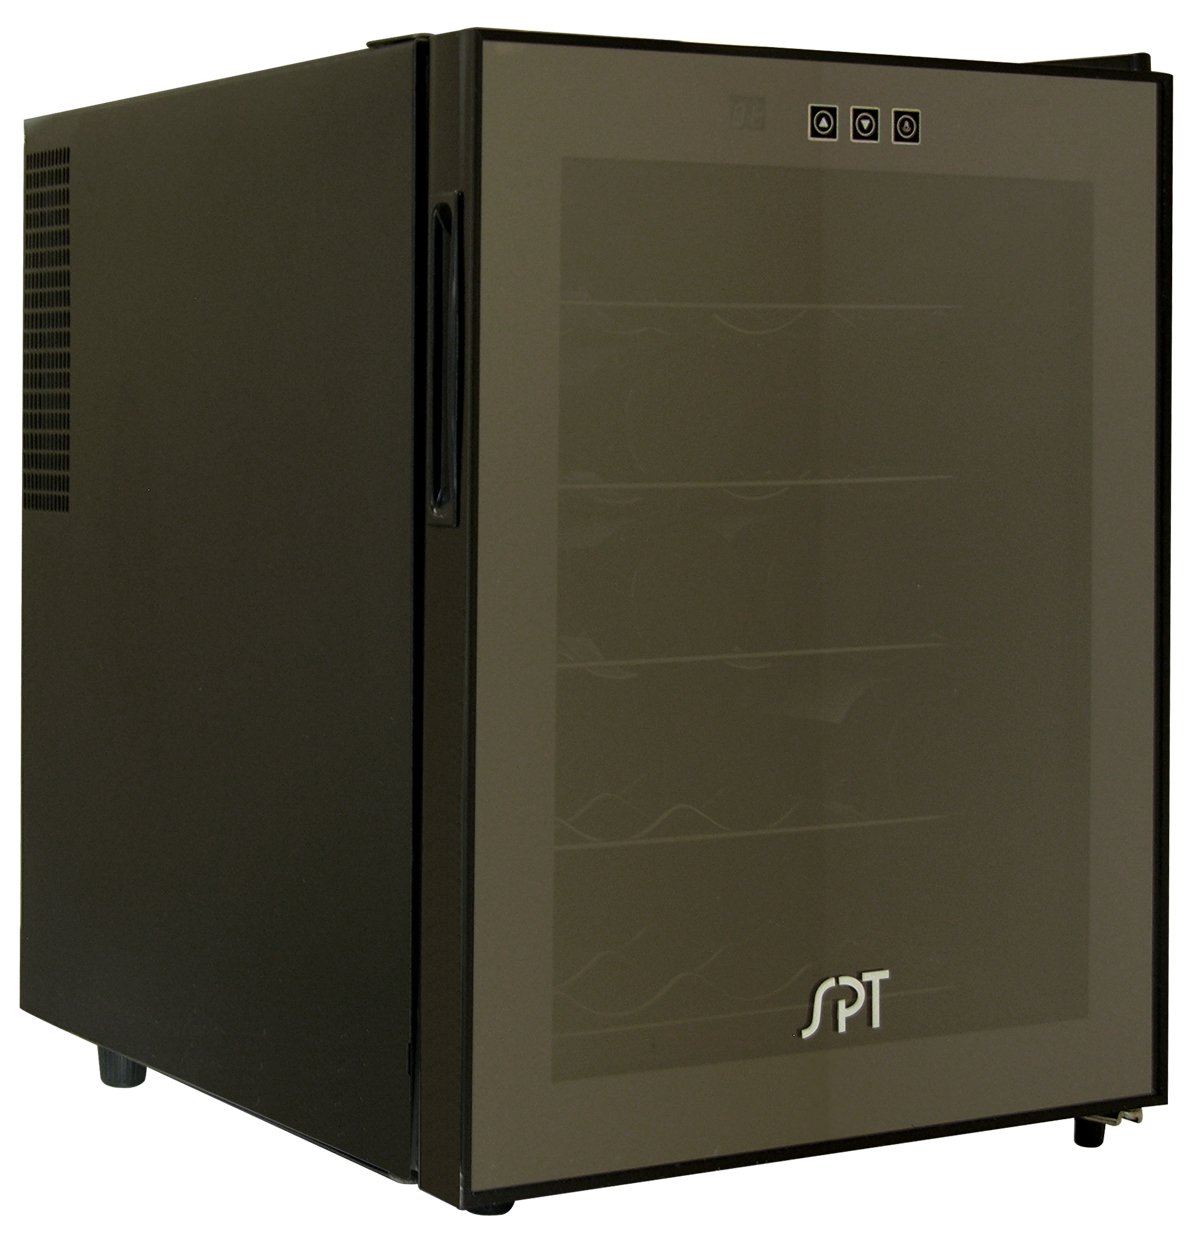 Sunpentown WC-20TL ThermoElectric with Touch Sensitive Controls 20-Bottle Wine Cooler SPT Appliance